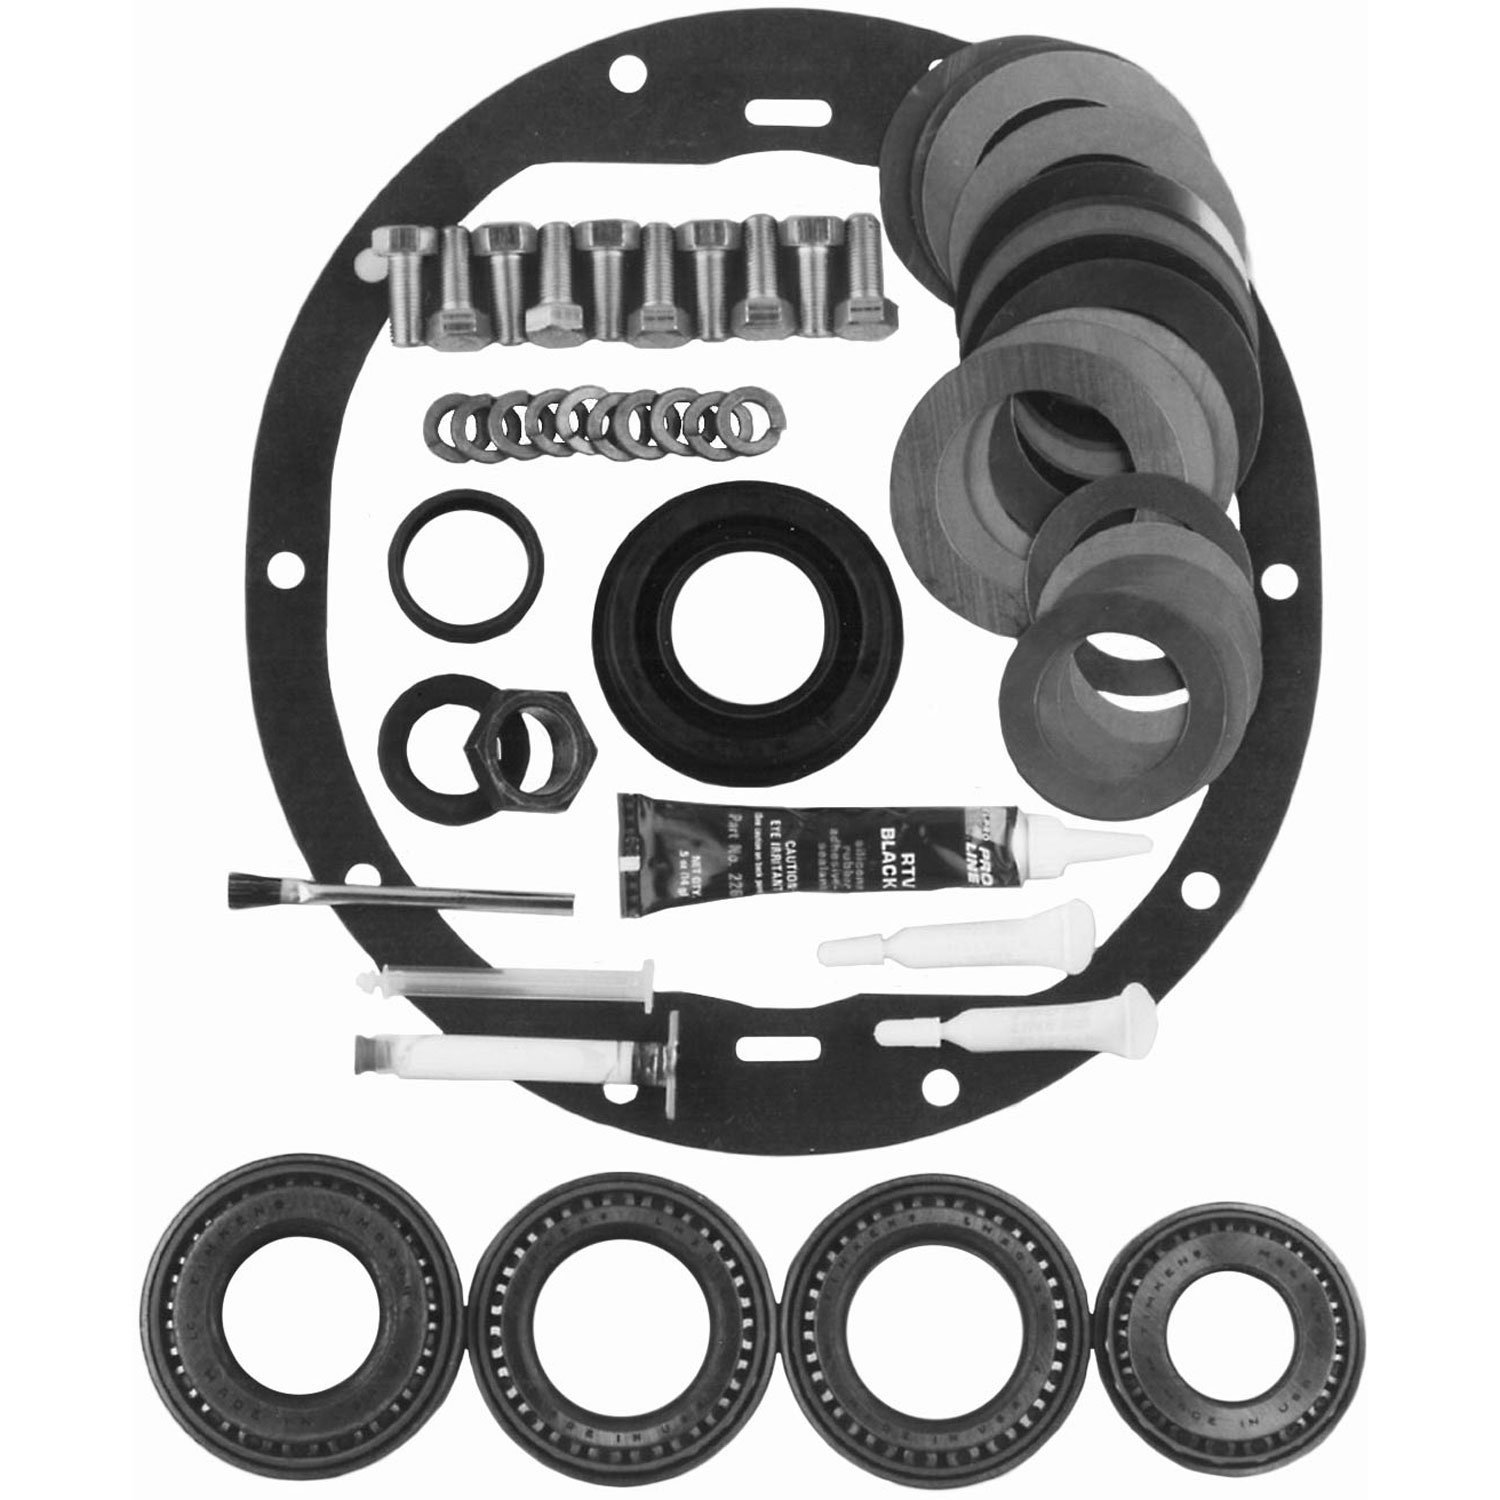 83-1044-M Richmond Install Kit